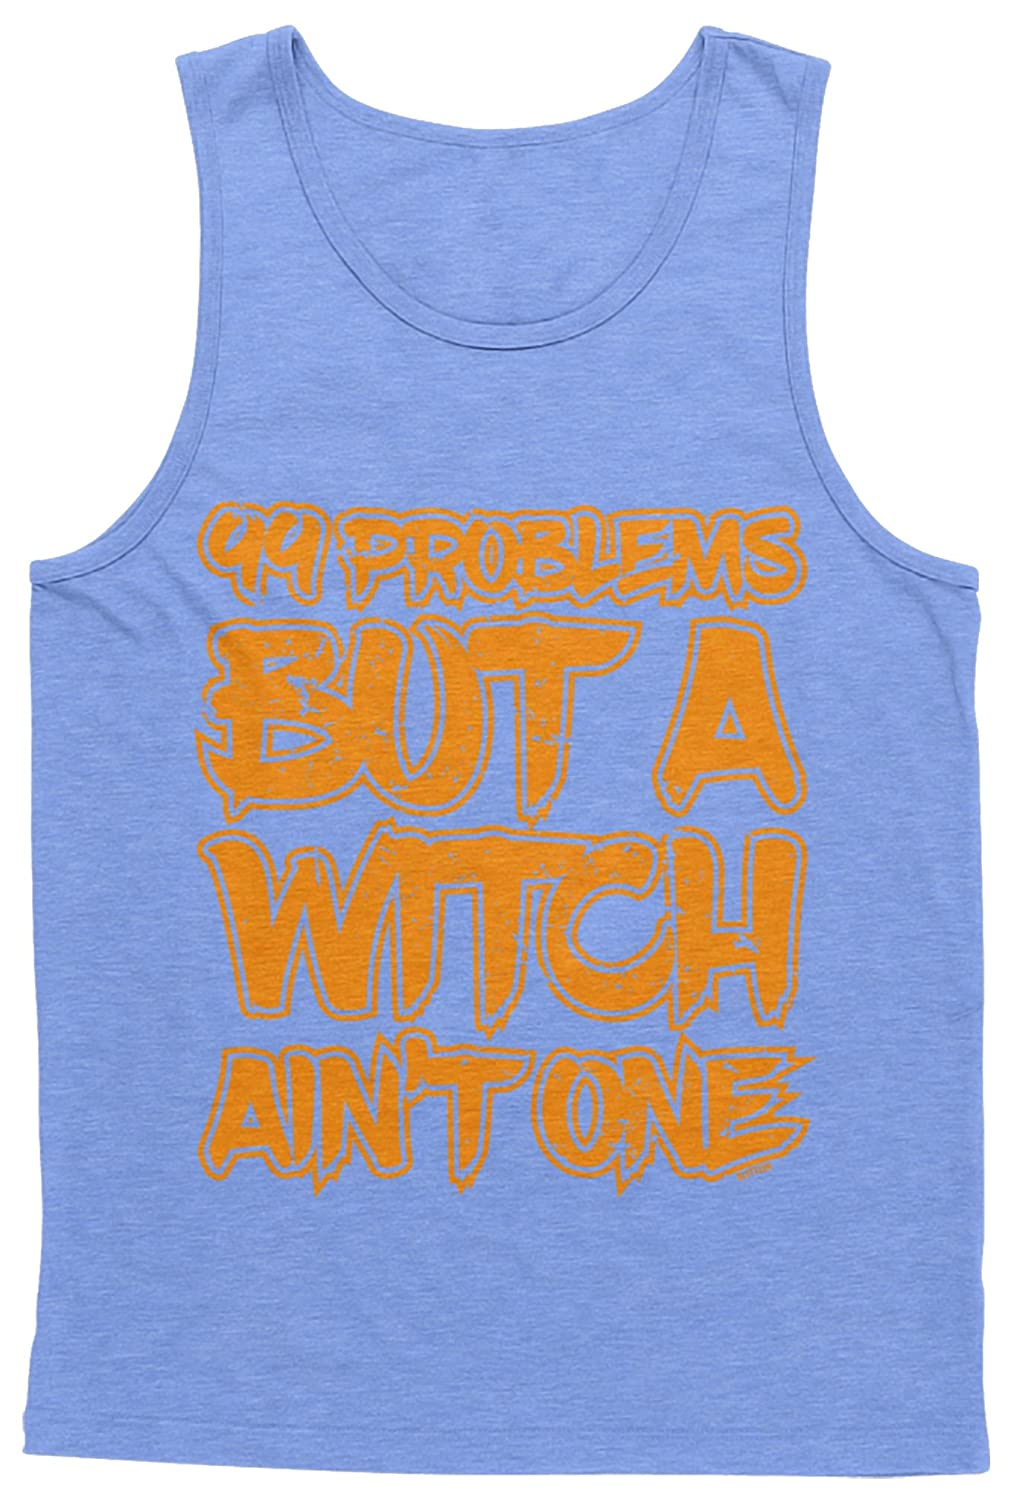 Blittzen Mens Tank Top Witch Aint One